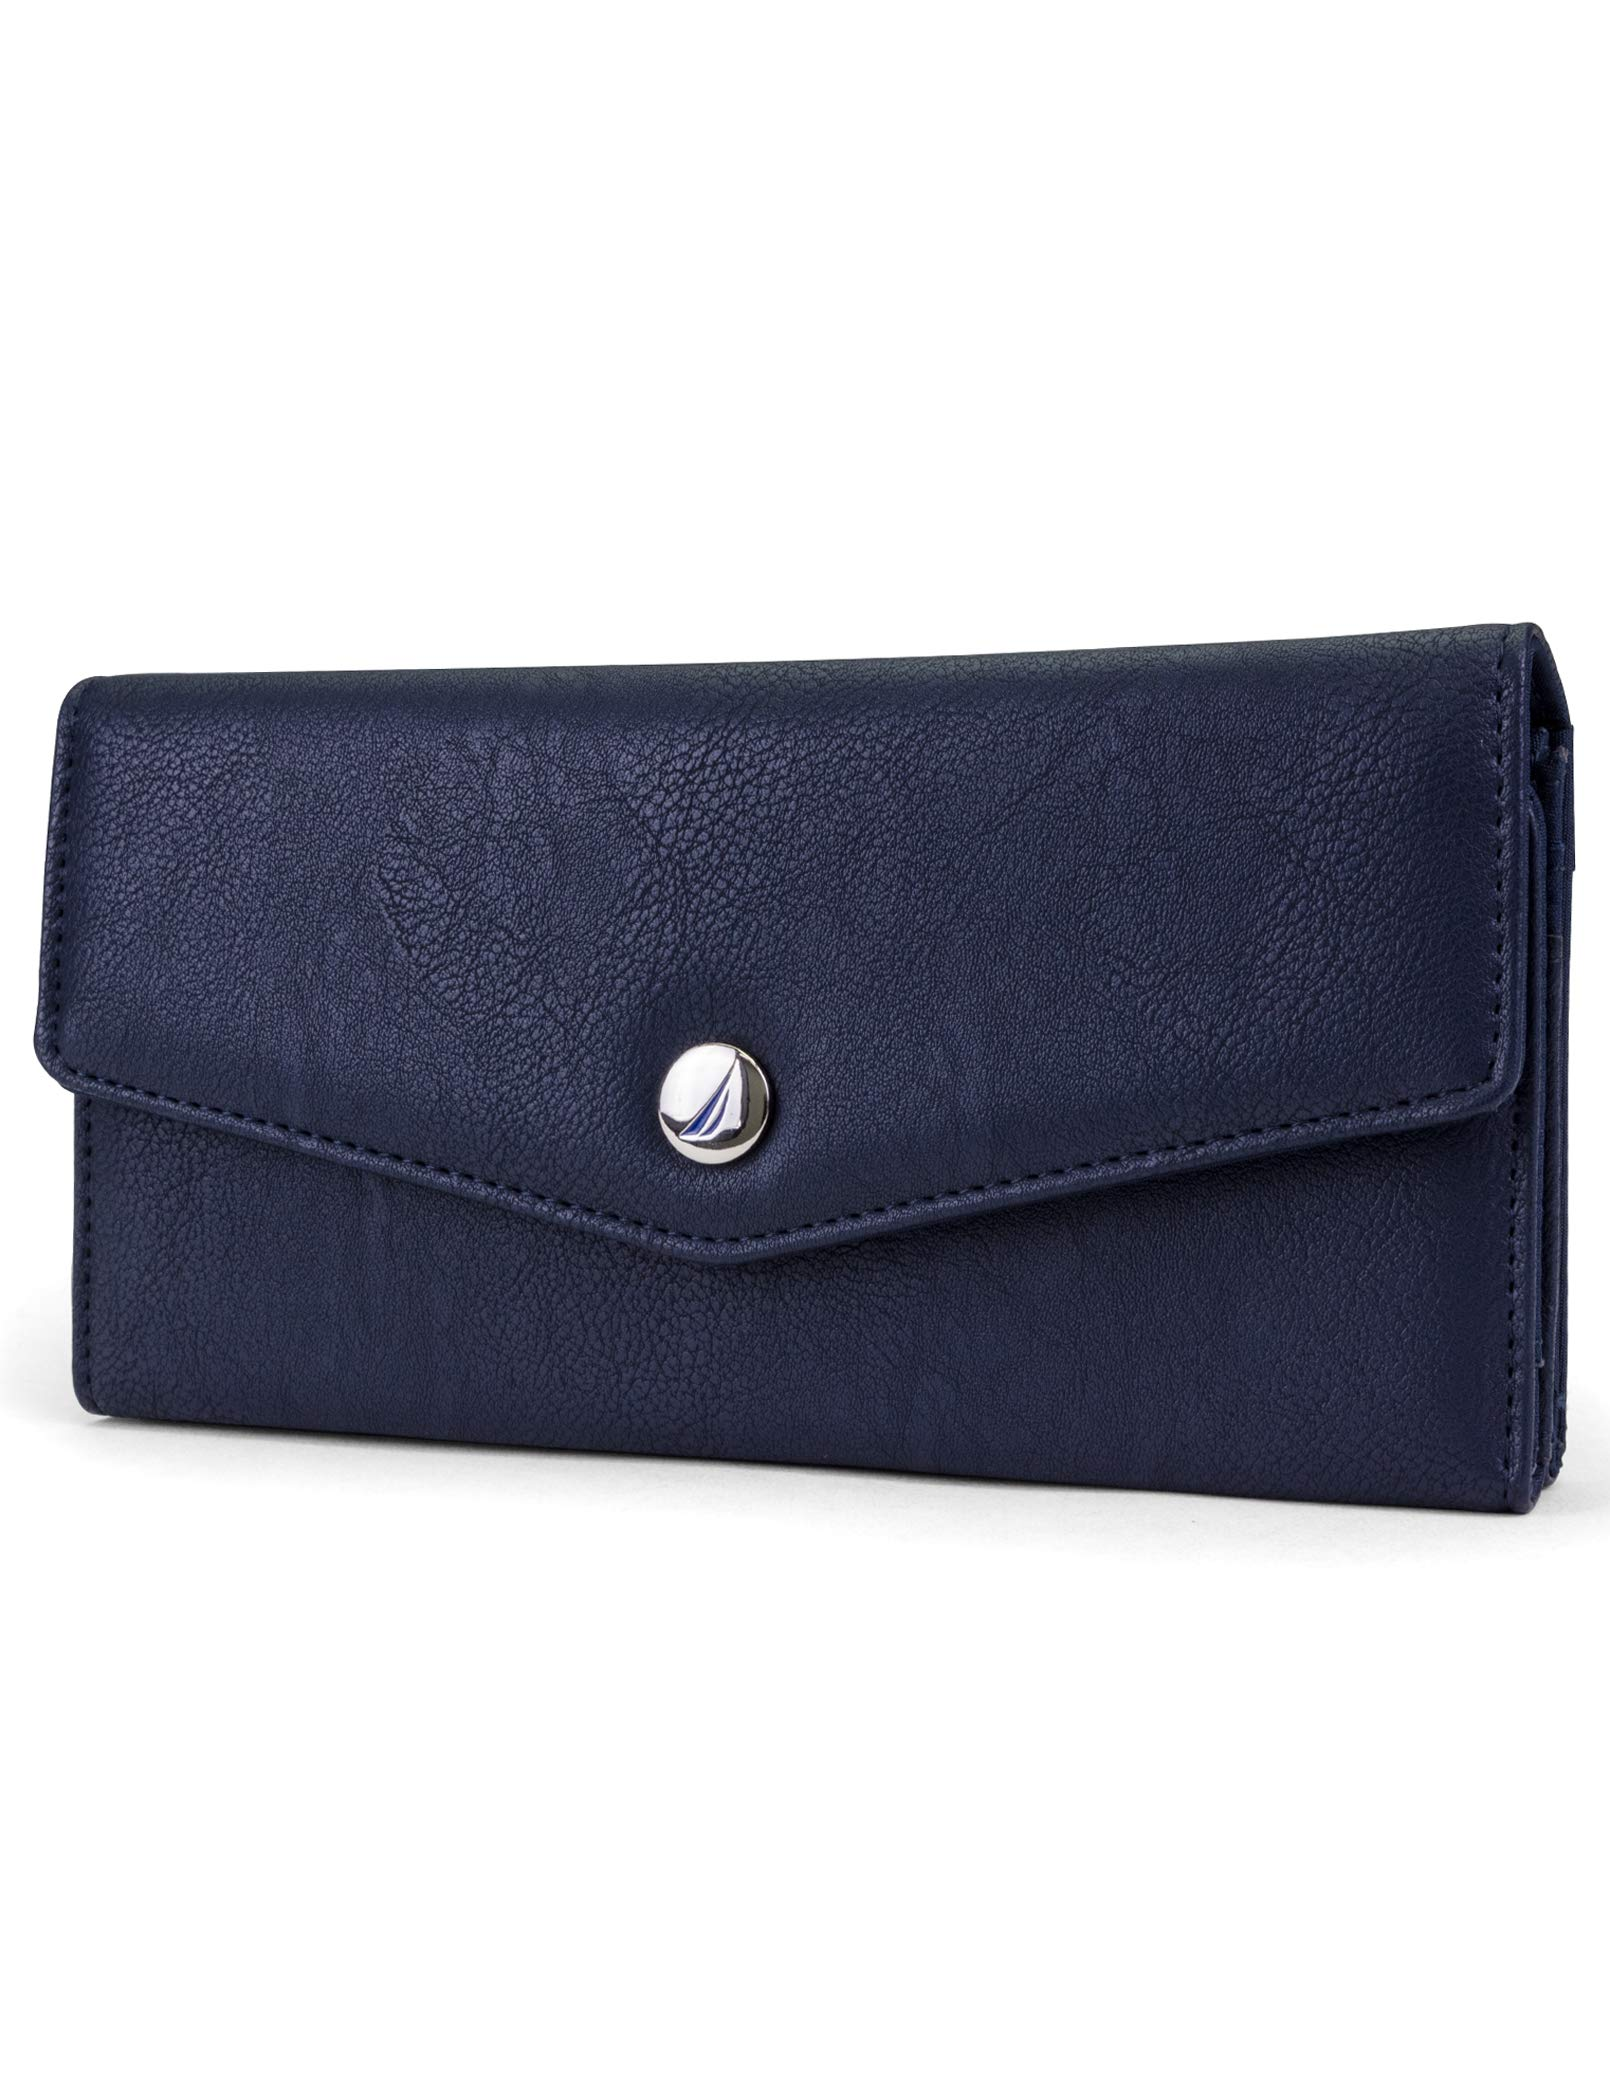 Nautica Money Manager RFID Women's Wallet Clutch Organizer (Indigo Buff) by Nautica